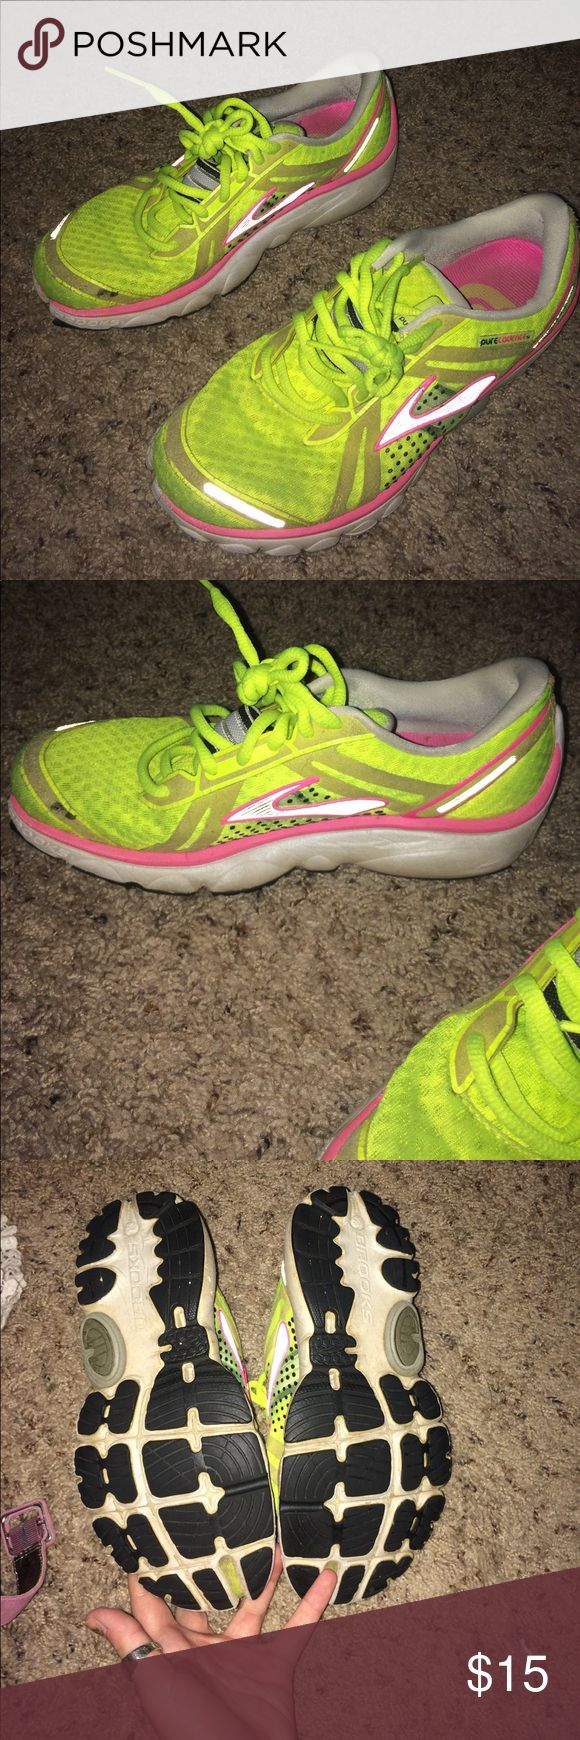 Neon Brooks Running shoes Gently used show some wear - great running shoes! Brooks Shoes Sneakers